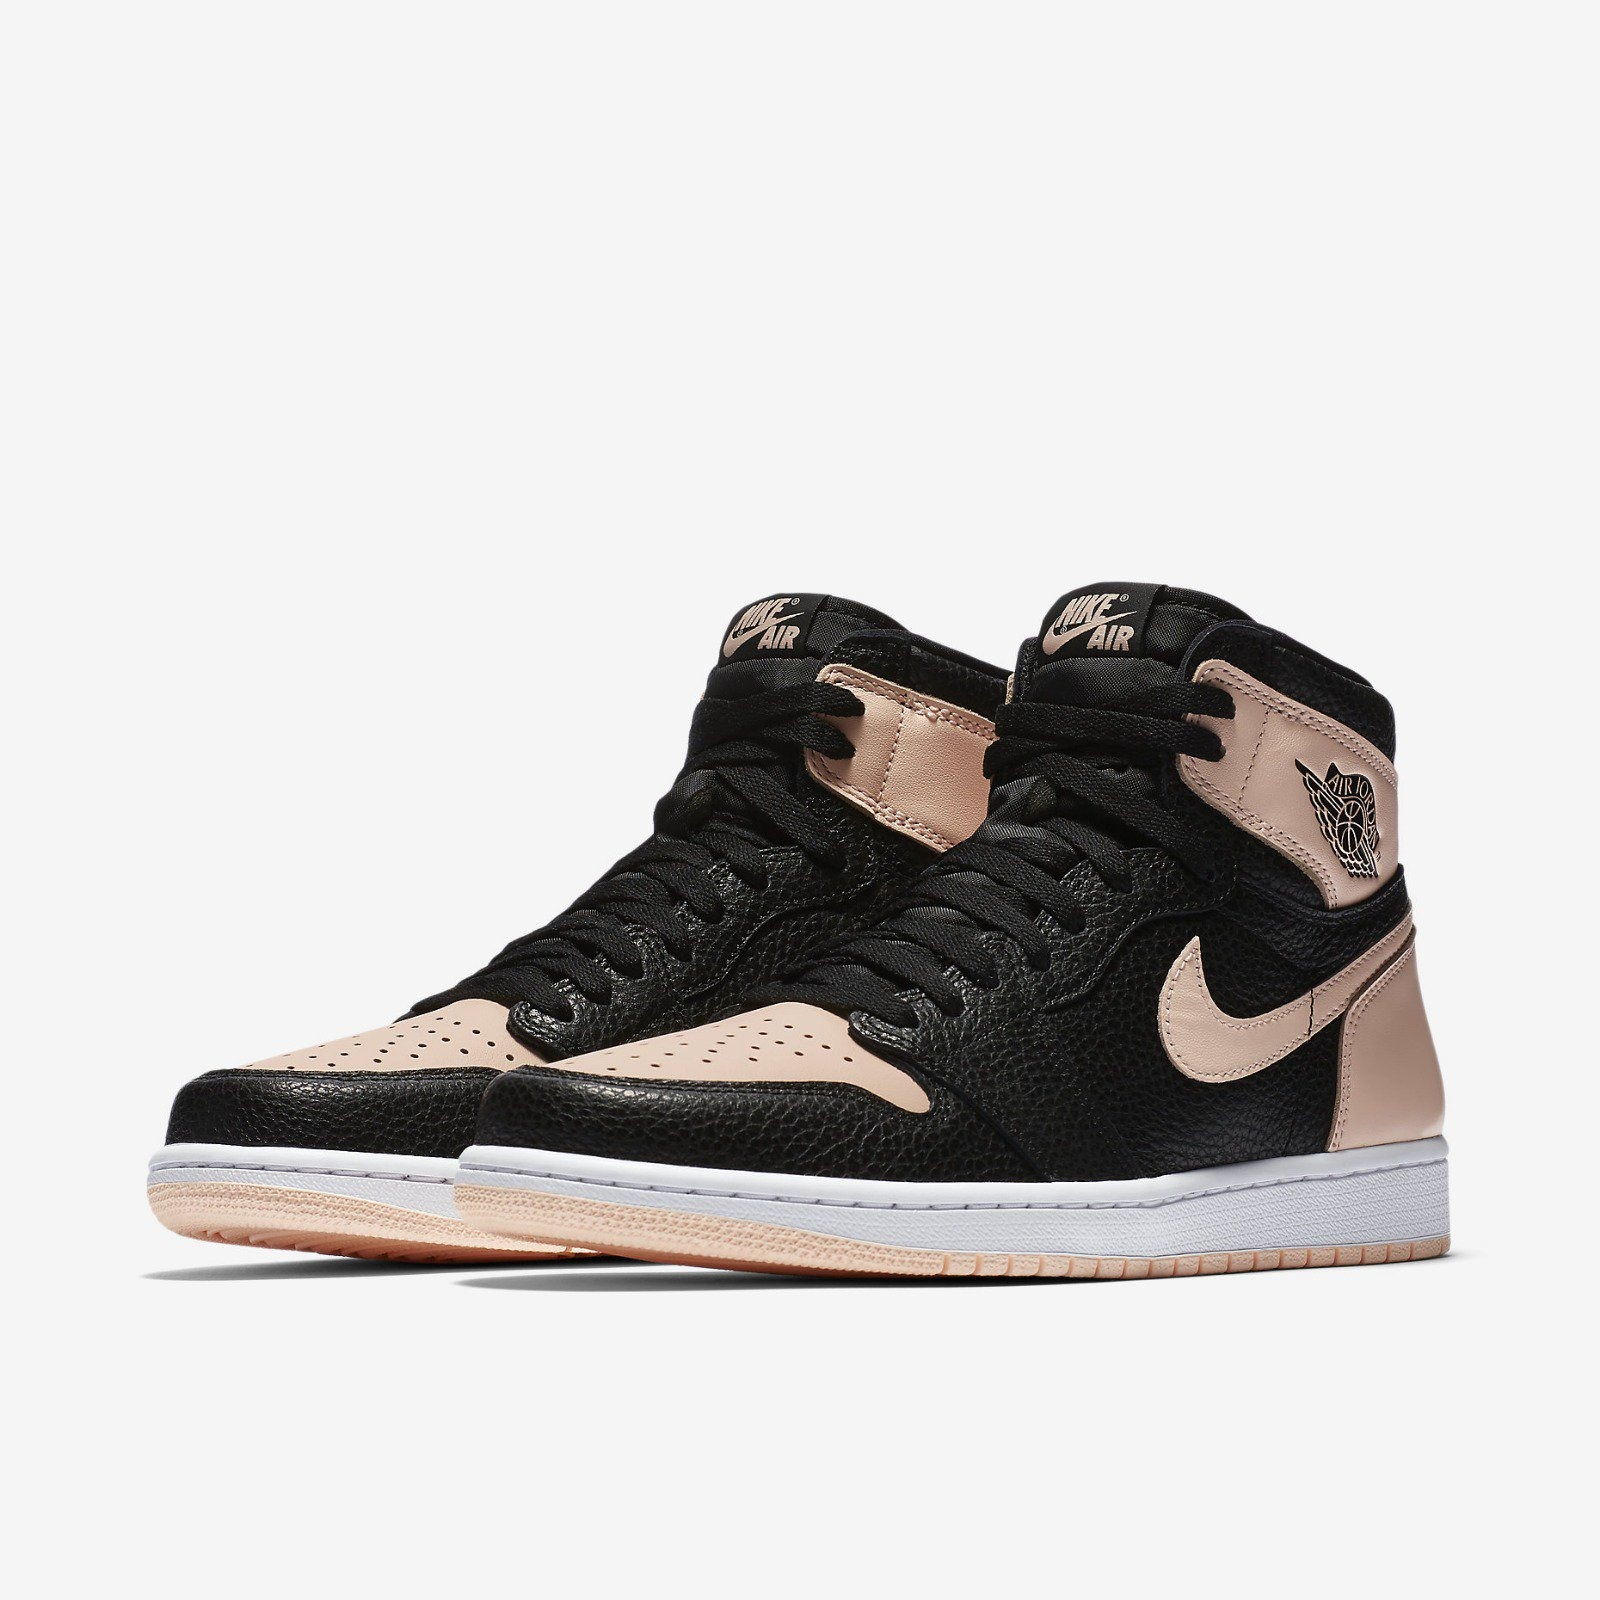 555088 081 Air Jordan 1 Retro High OG Crimson Tint 2